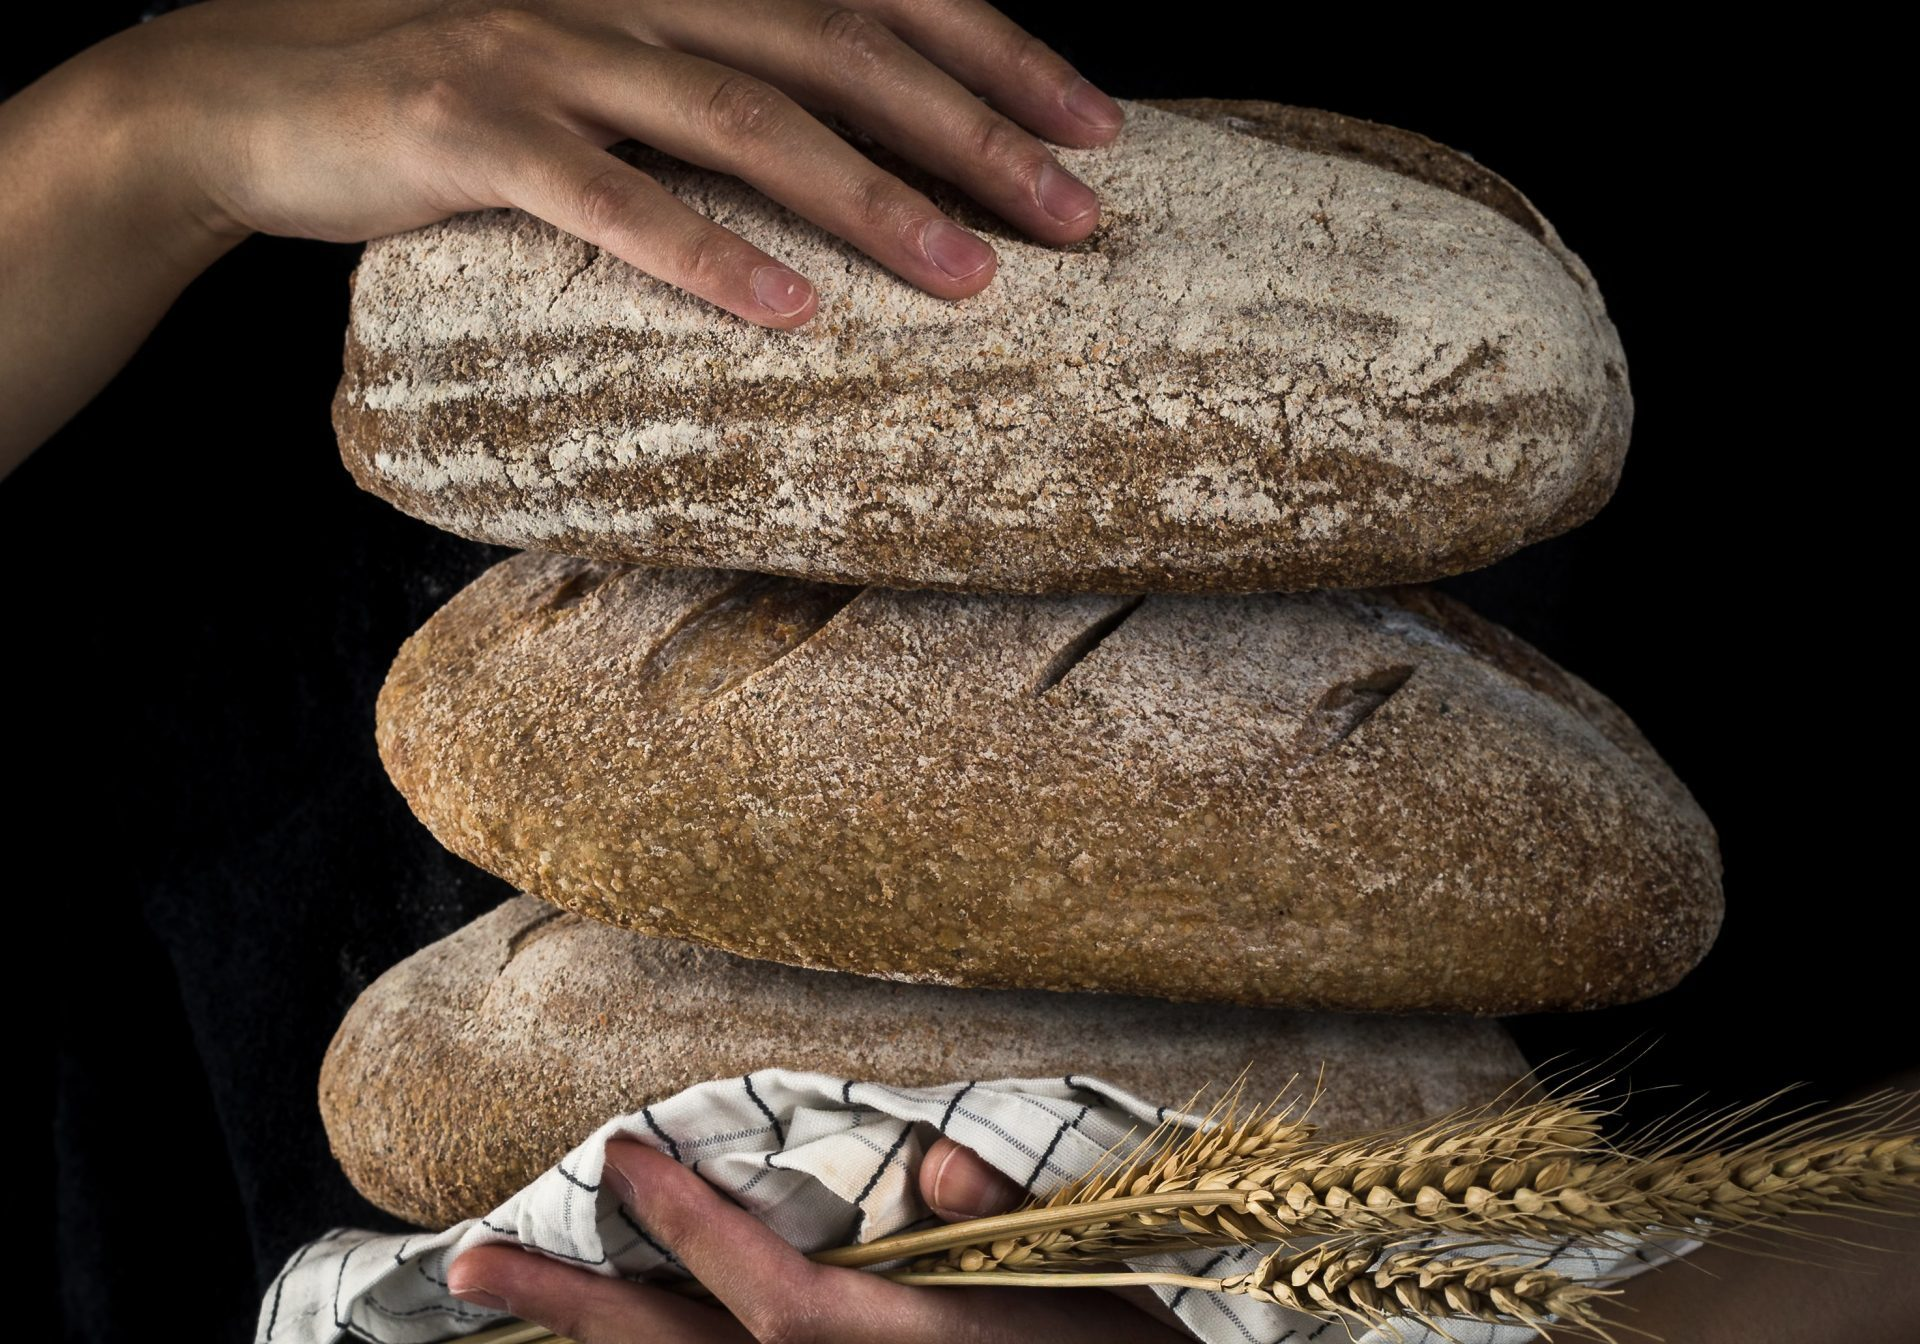 baking three different sorts of bread in. the hands of a woman, black background